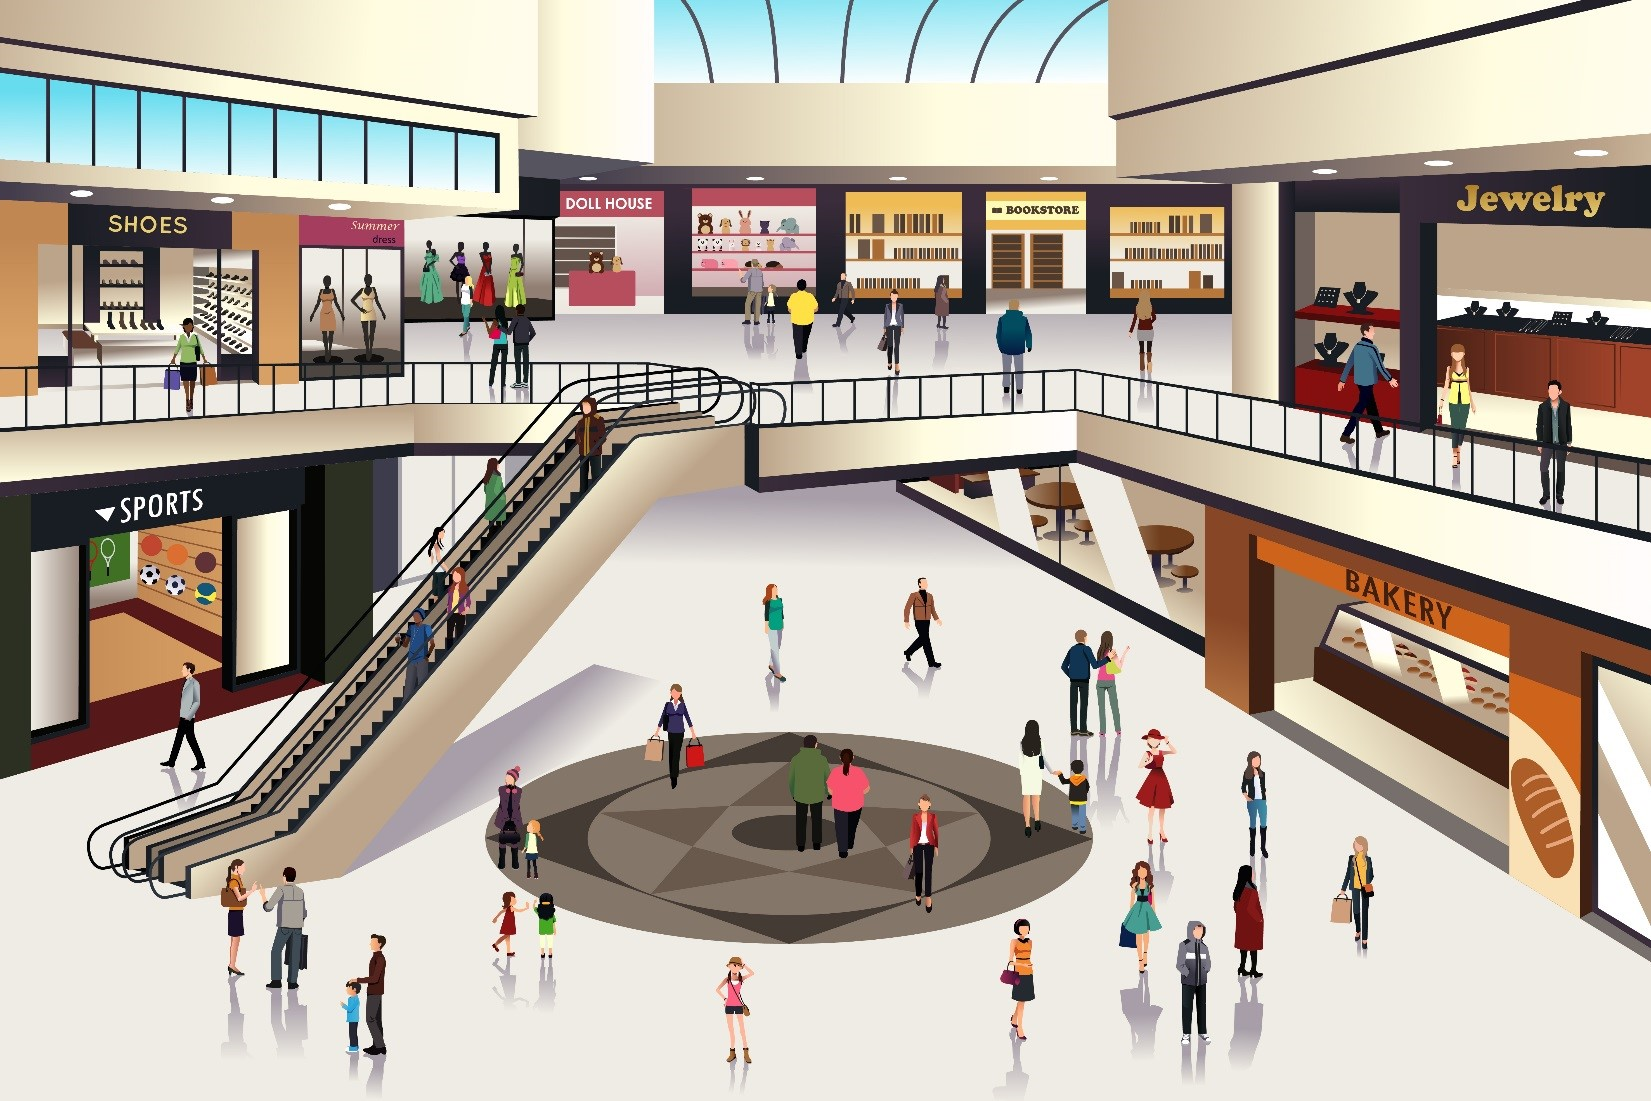 Illustration of a mall